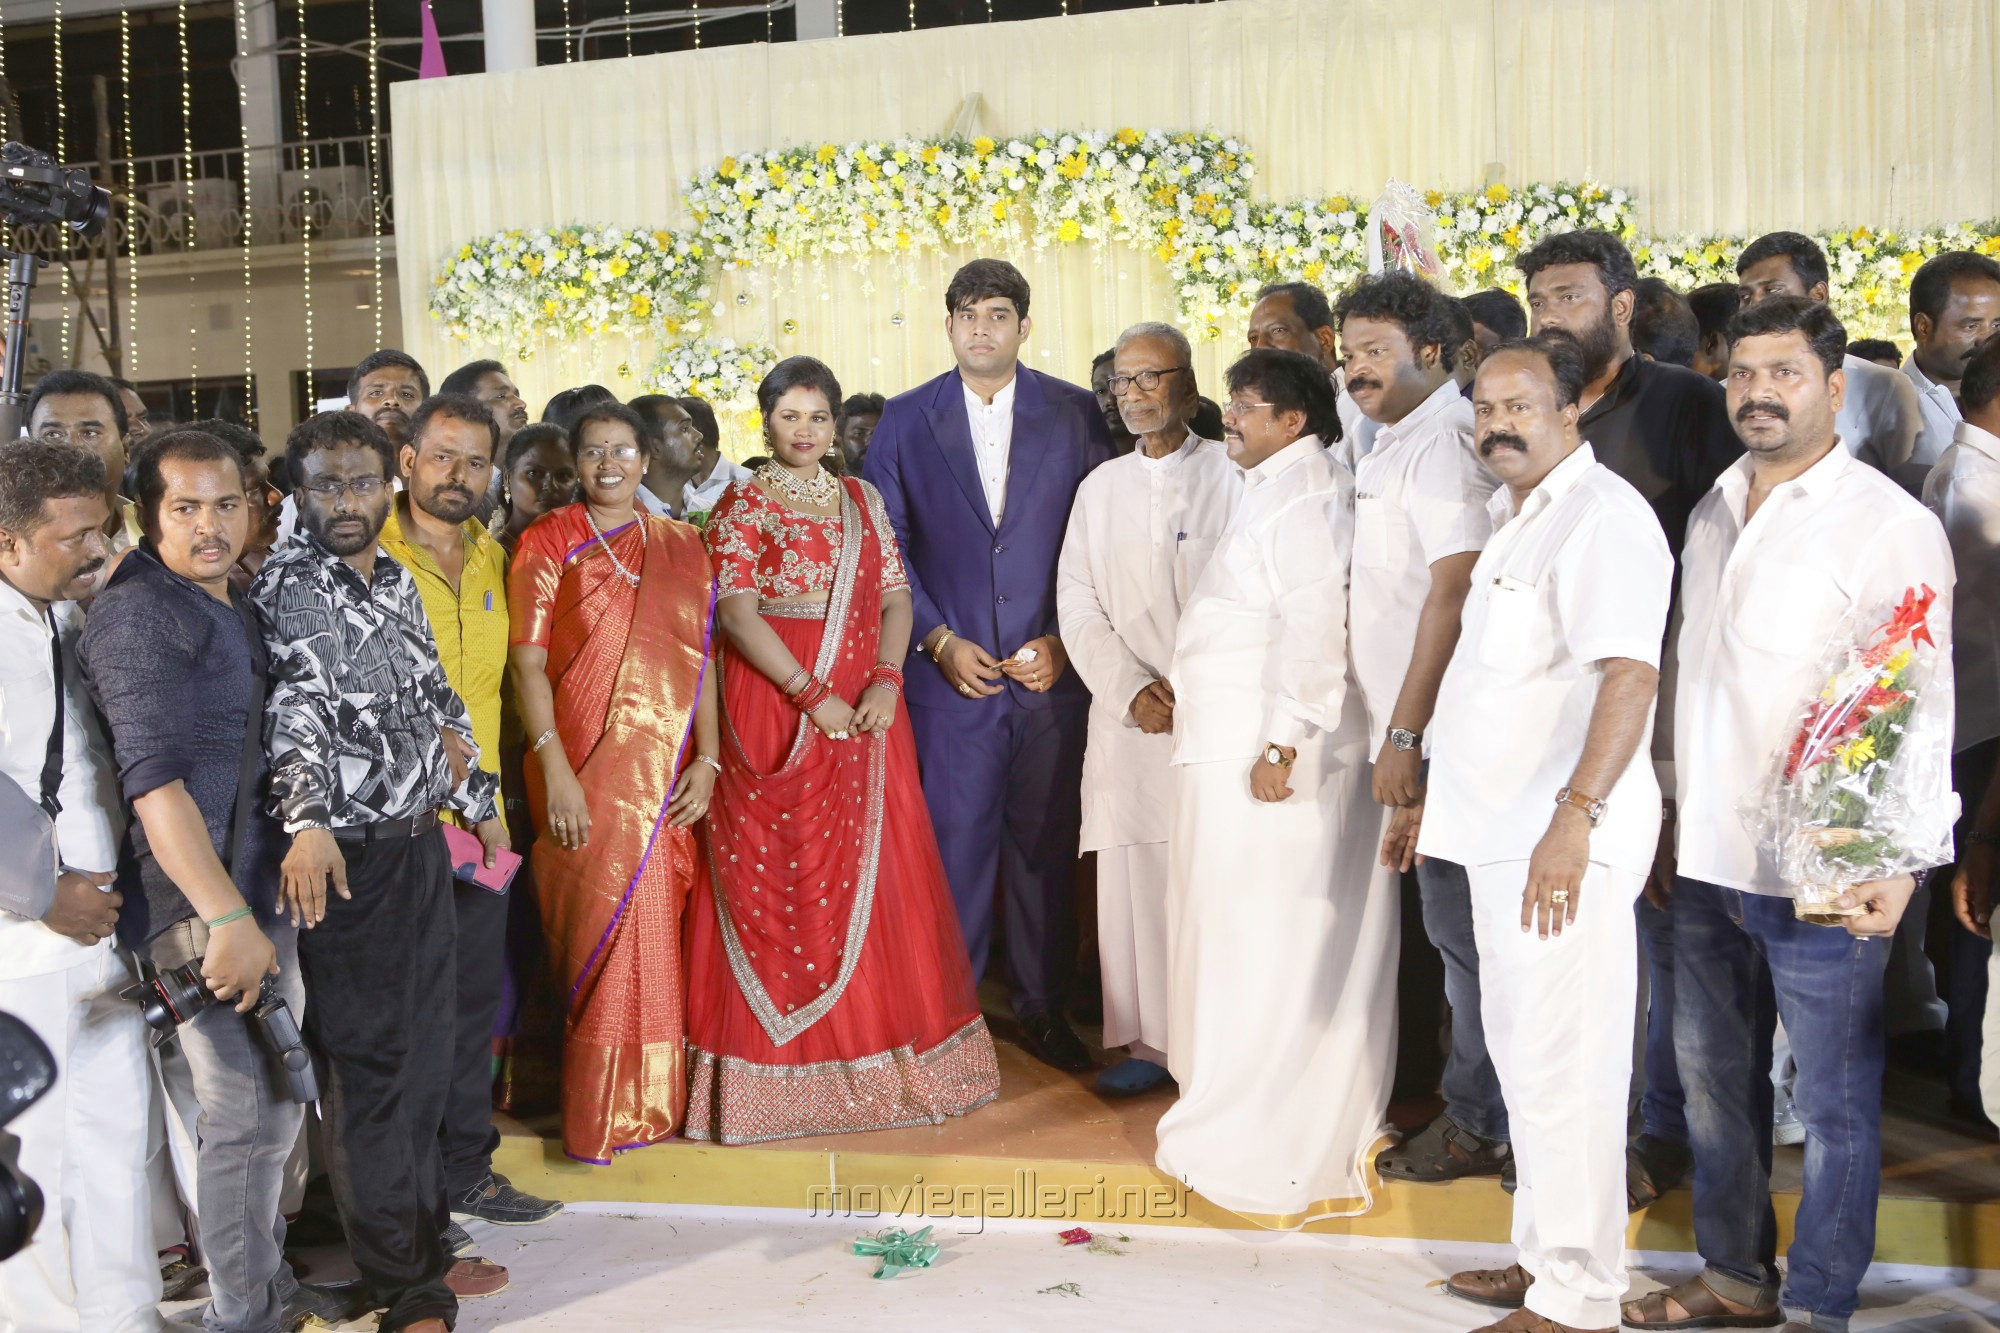 Pazha Nedumaran, V Gowthaman @ Salem RR Briyani Tamilselvan daughter Wedding Reception Stills